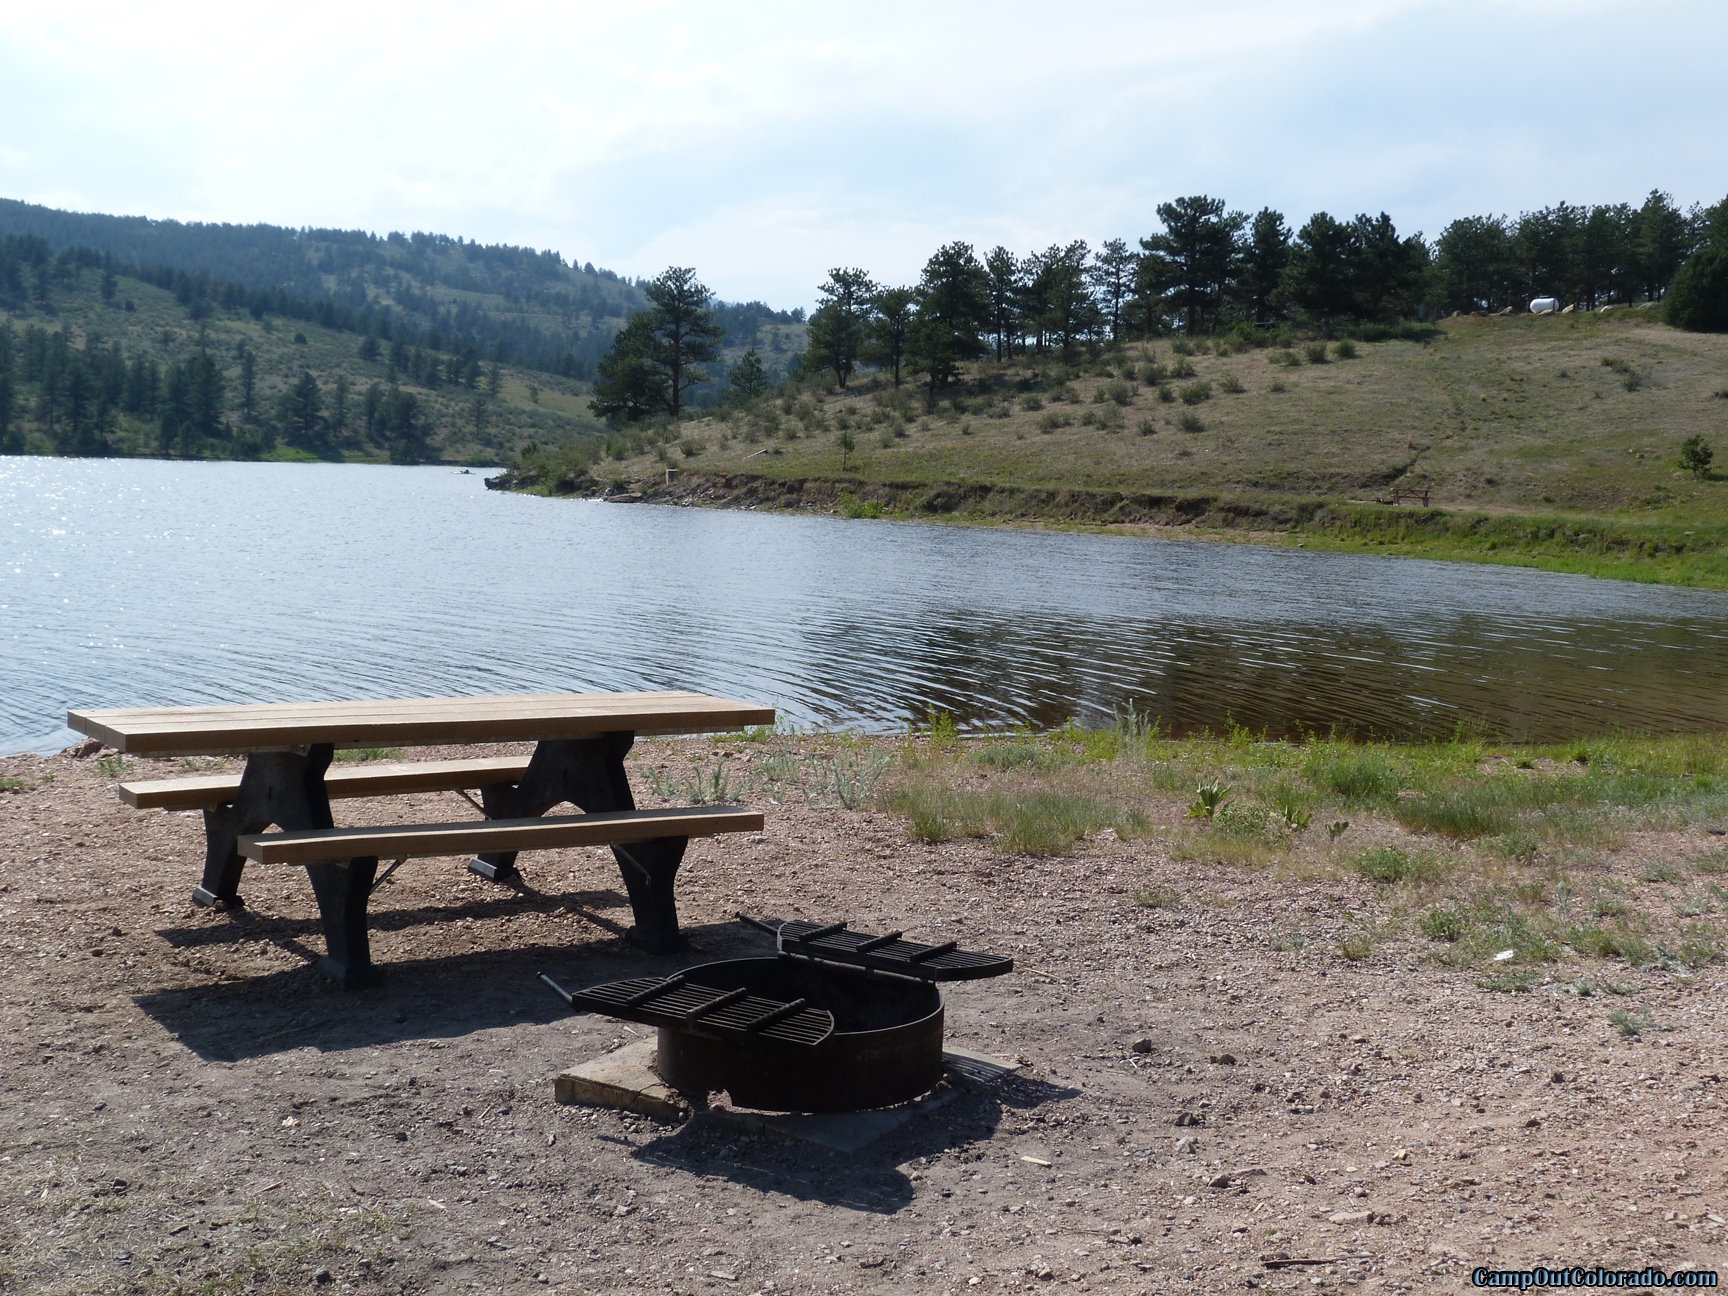 camp-out-colorado-pinewood-camping-at-the-lake